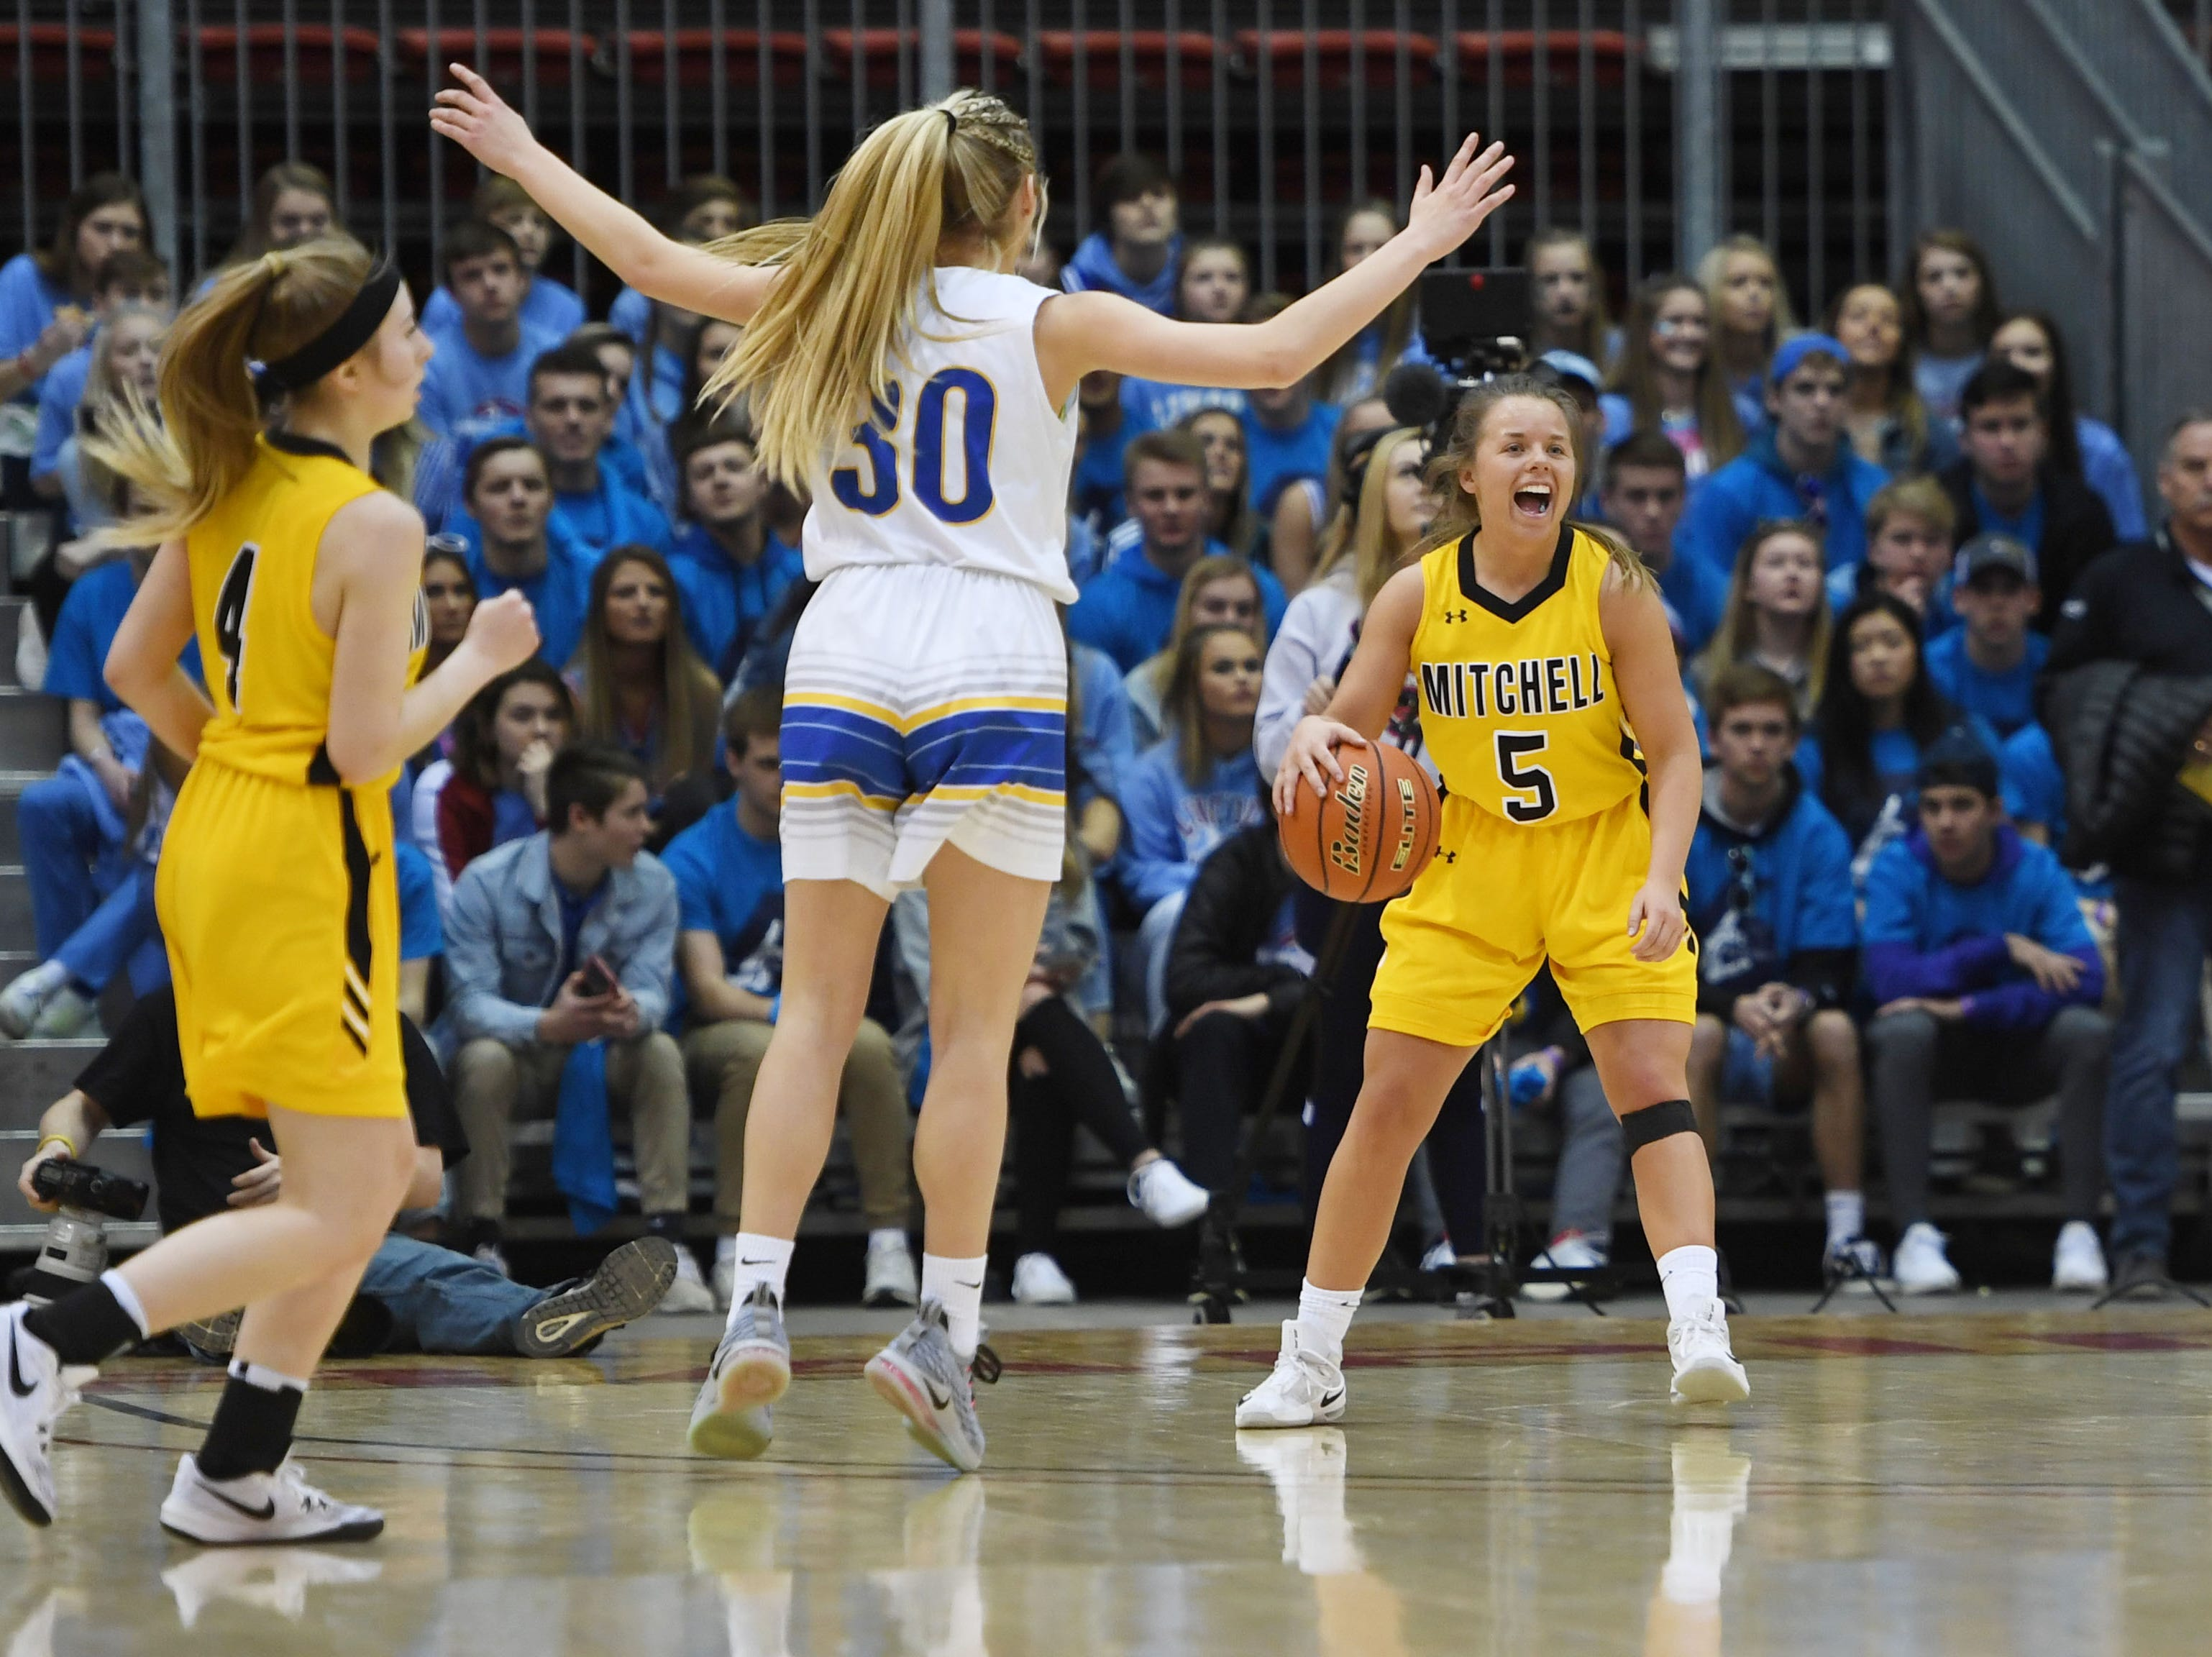 Mitchell's Jordyn Cranny cheers in the last seconds of the game against O'Gorman in the Class AA quarterfinals Thursday, March 14, in Rapid City.